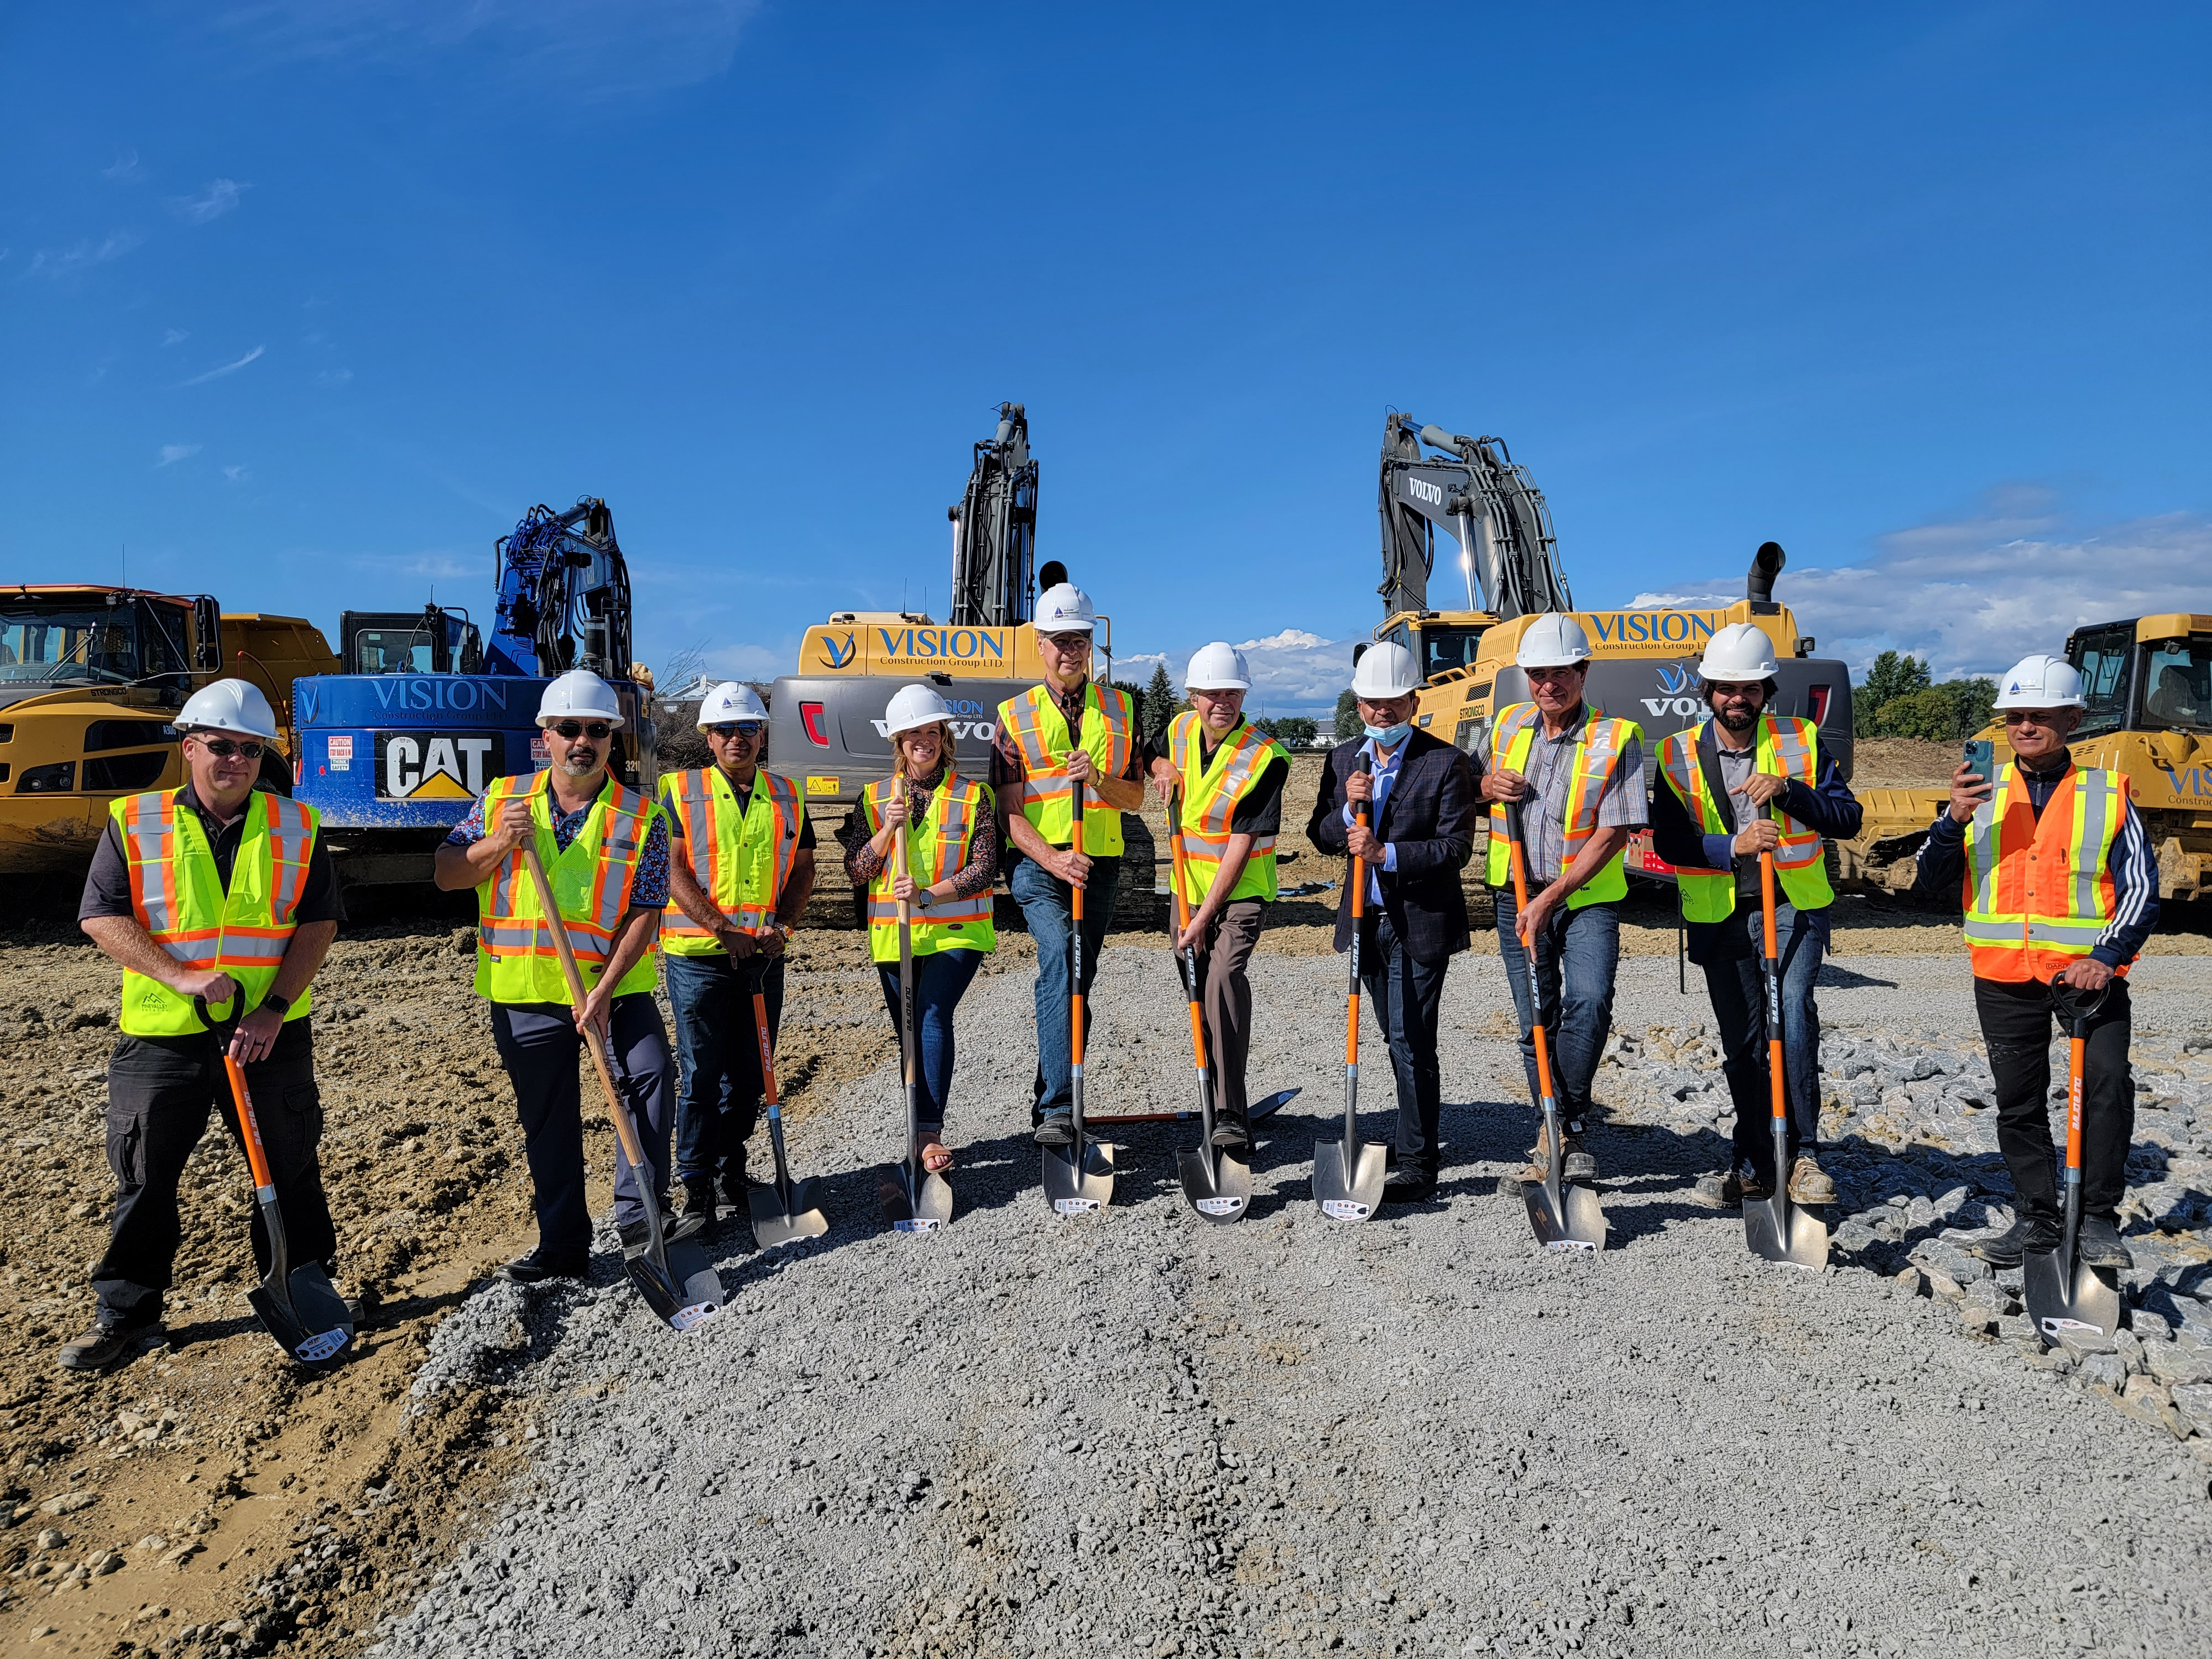 Group standing in construction gear with shovels in hand